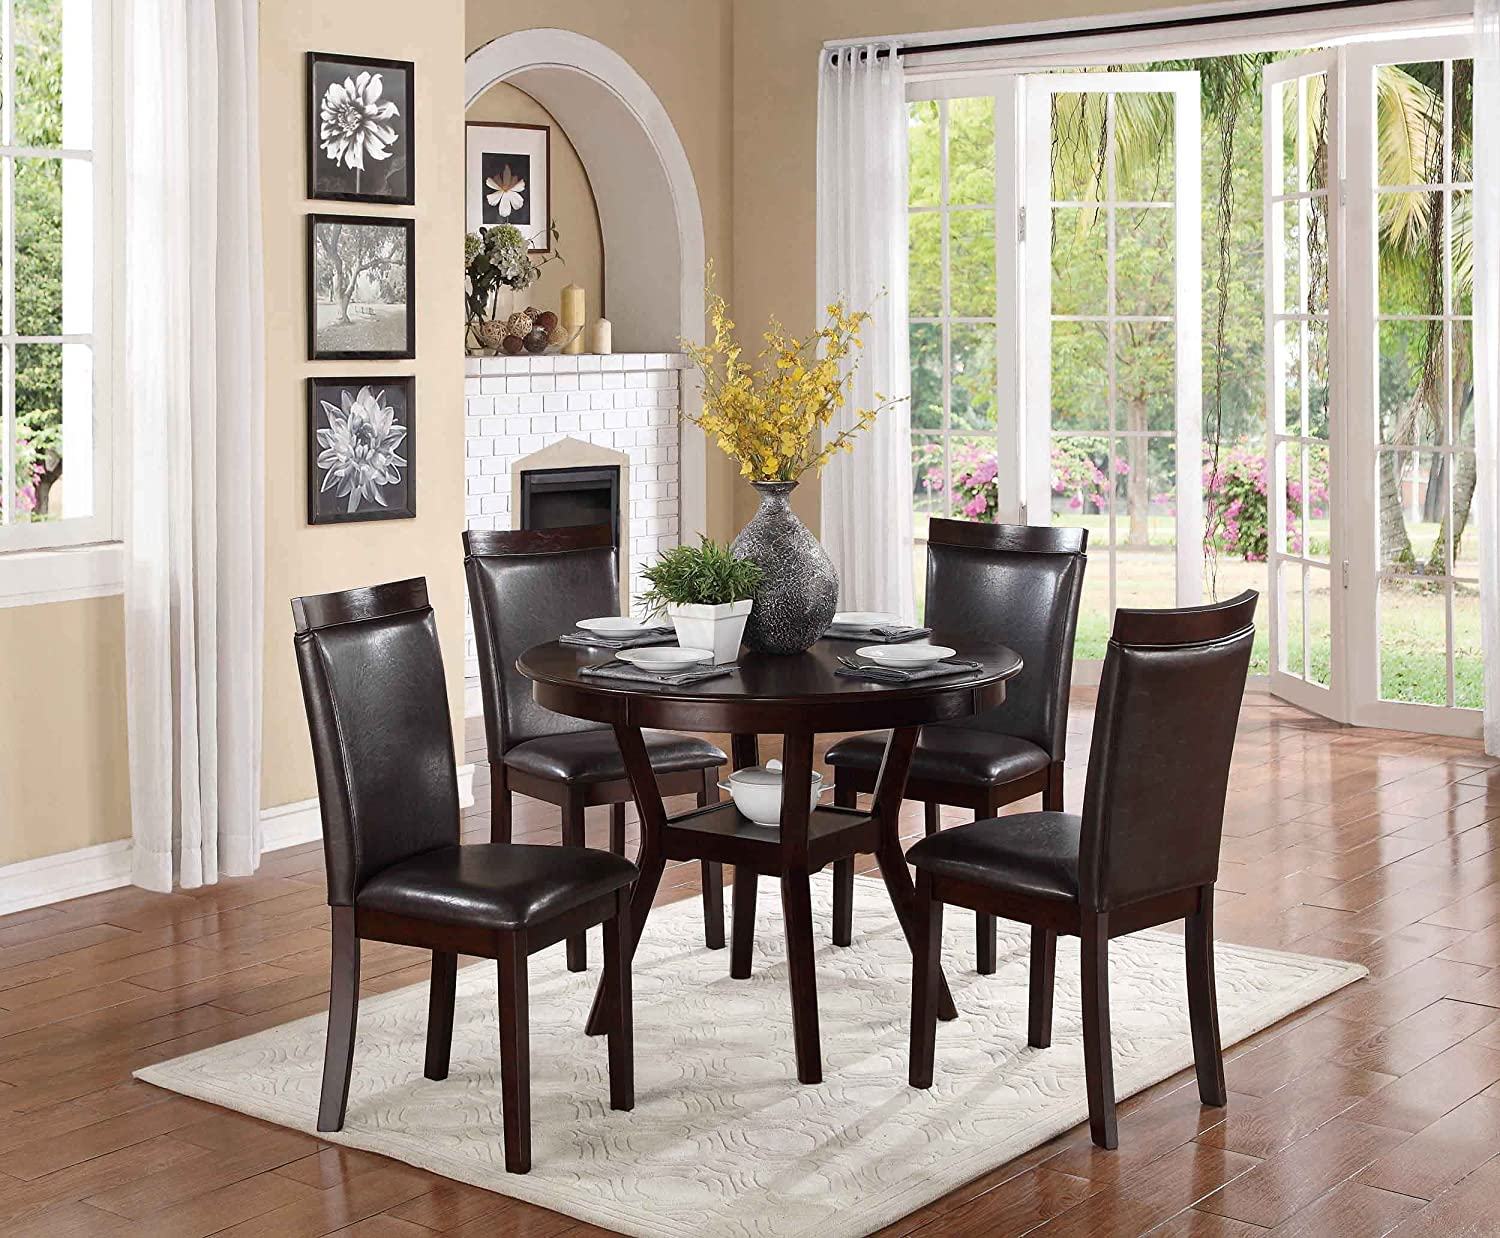 Amazon.com   Homelegance Shankmen Round 5 Piece Dining Set, Espresso    Table U0026 Chair Sets